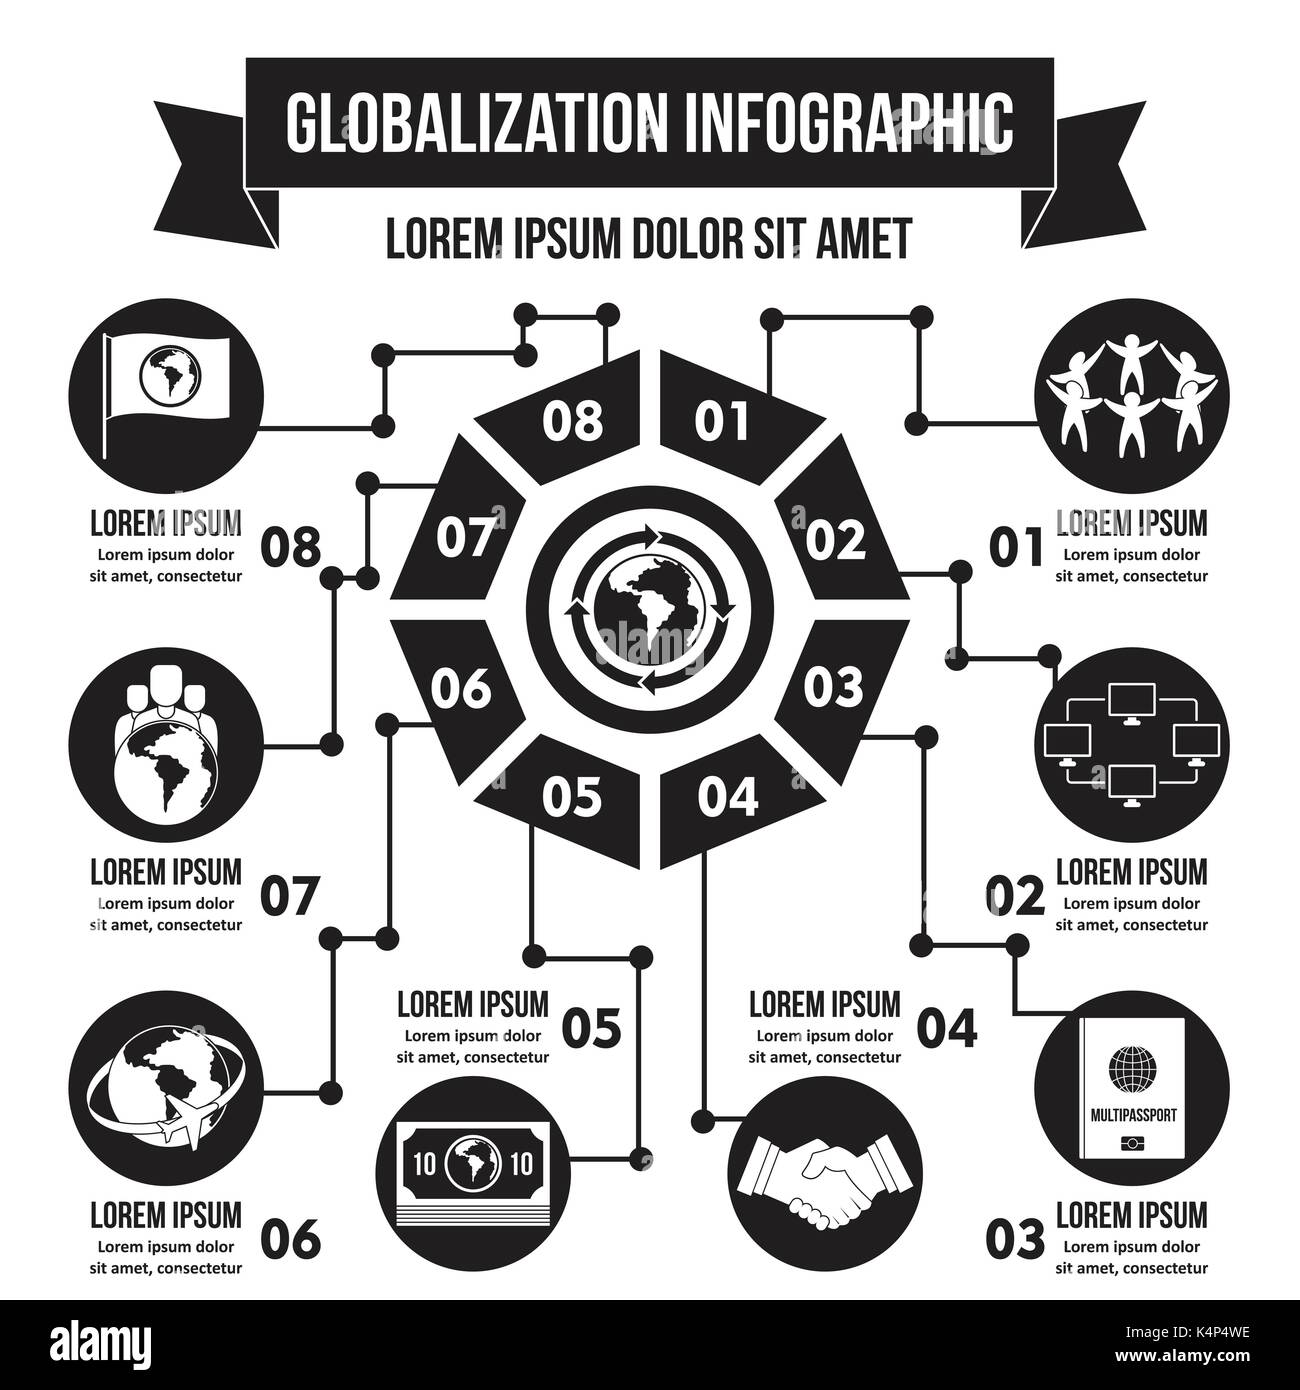 Globalization infographic concept, simple style - Stock Image